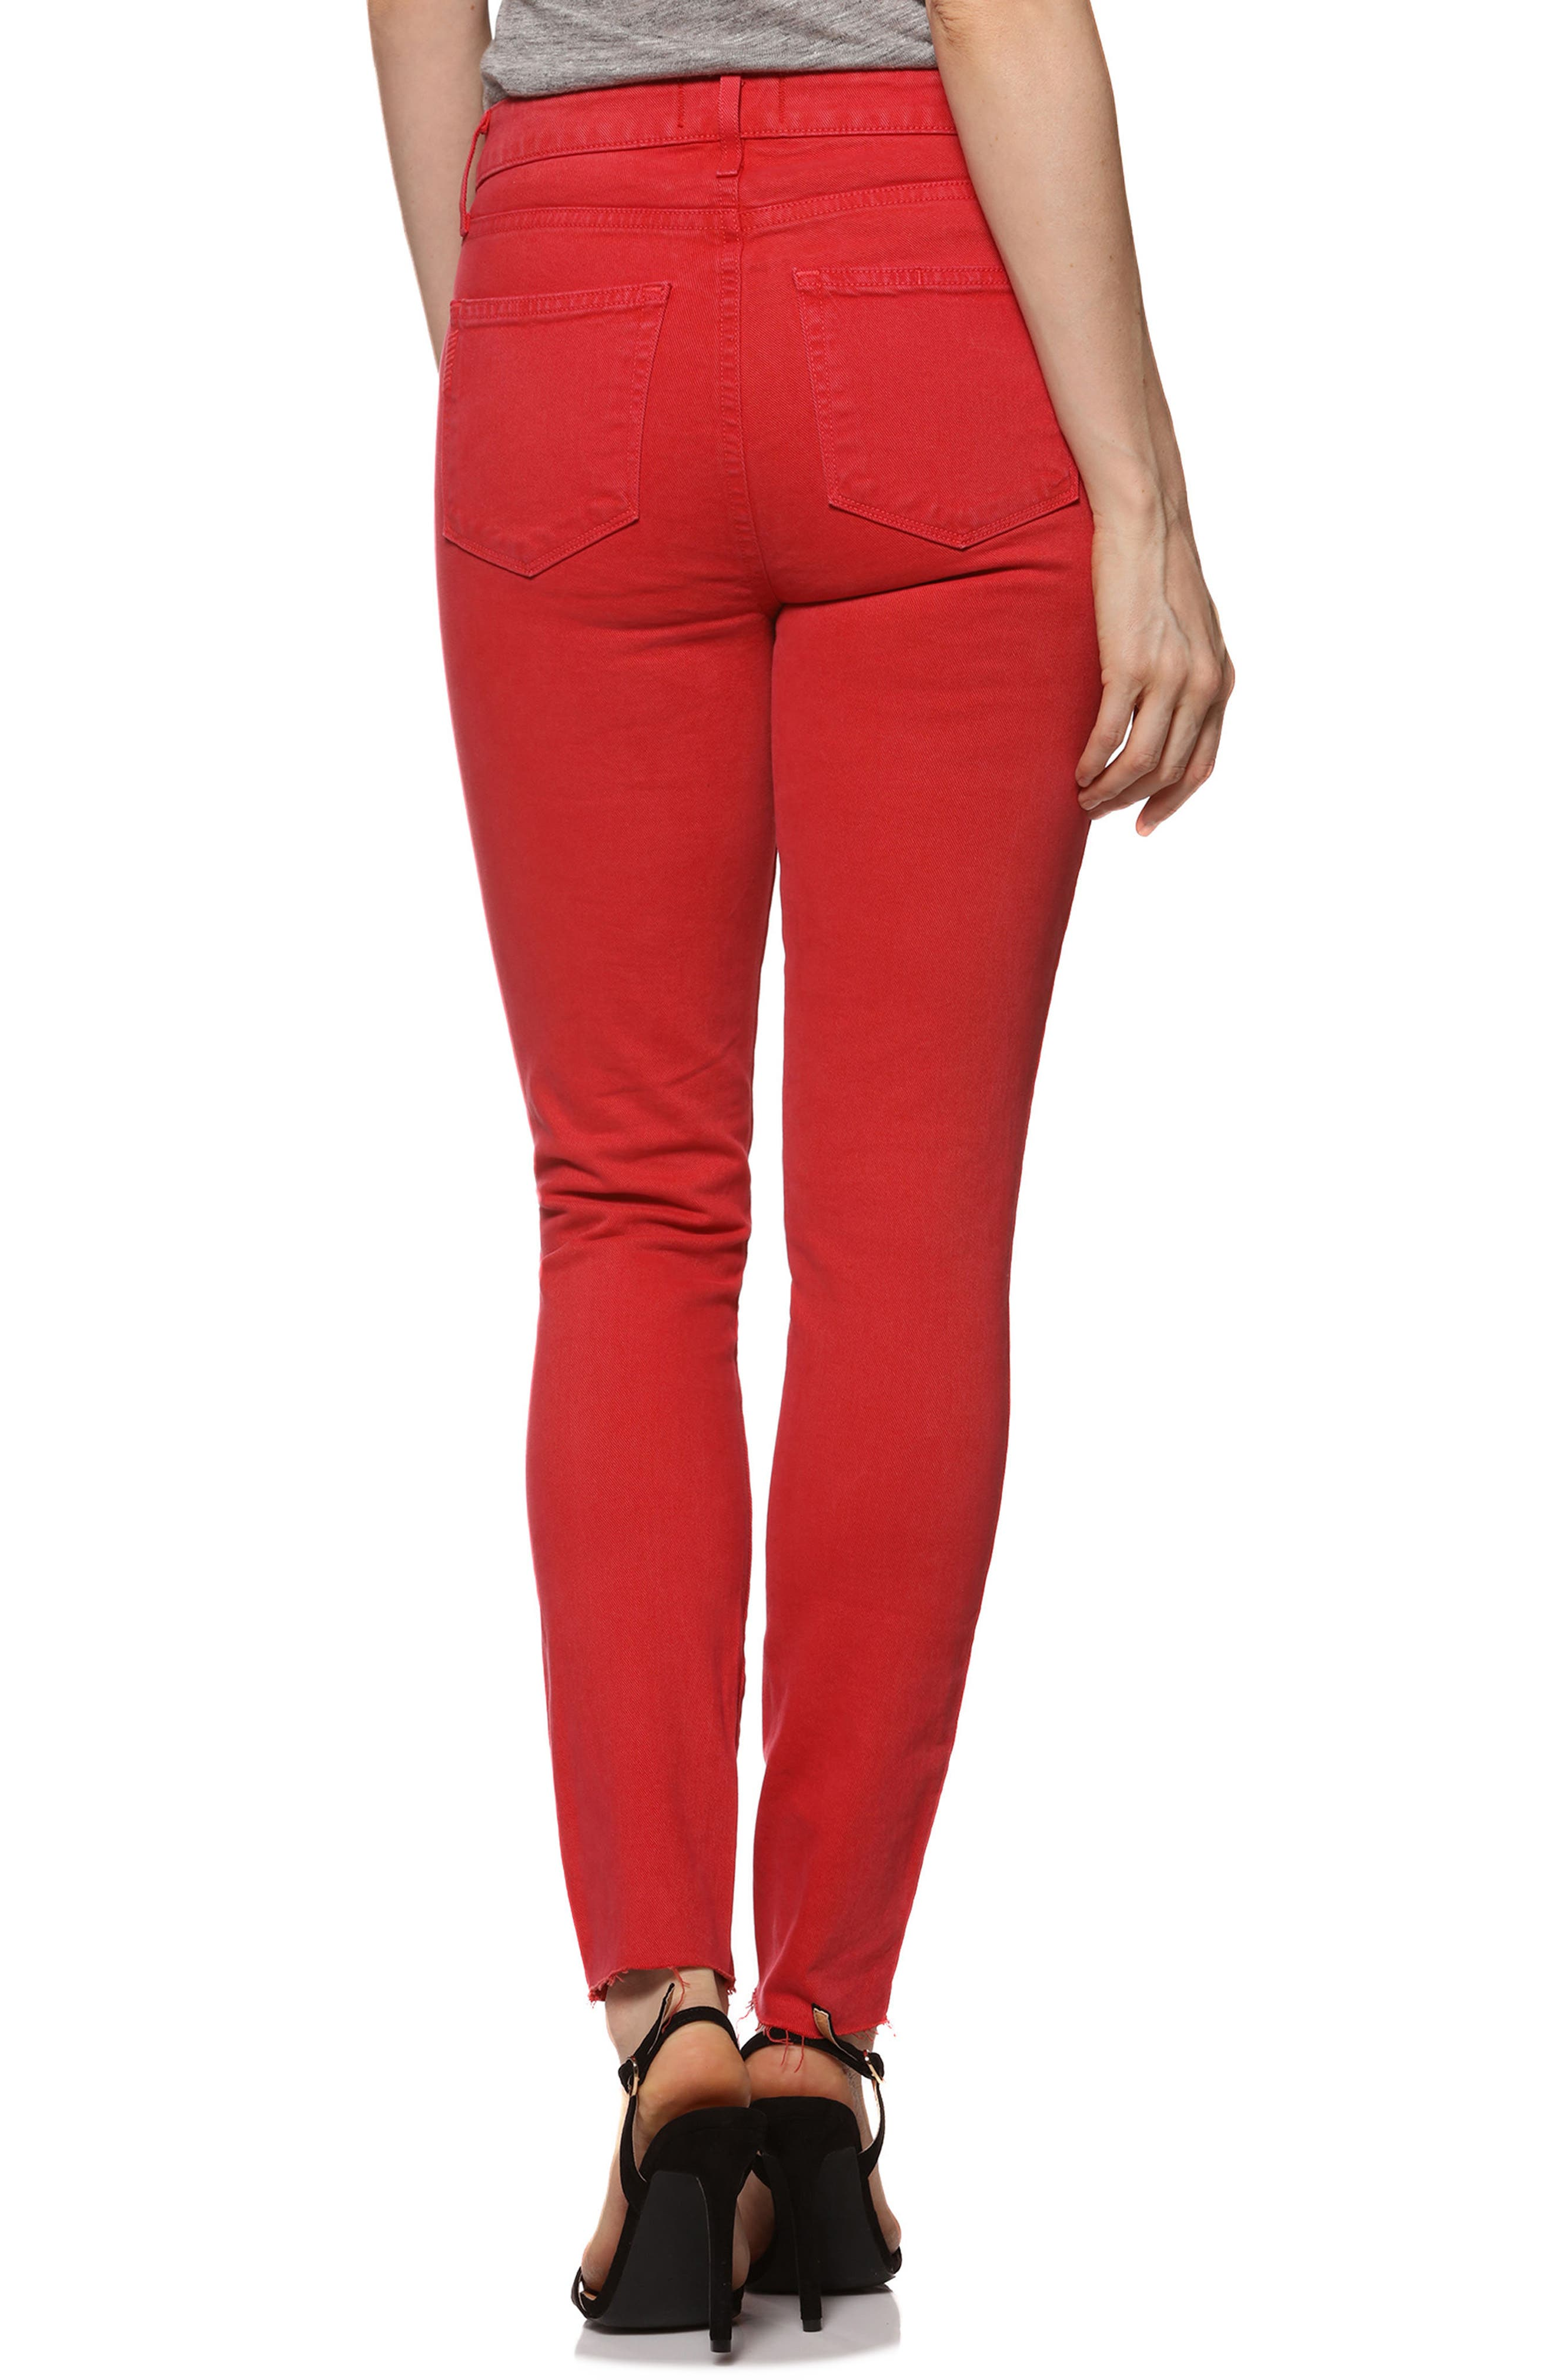 Hoxton High Waist Ankle Skinny Jeans,                             Alternate thumbnail 3, color,                             Vintage Cherry Bomb